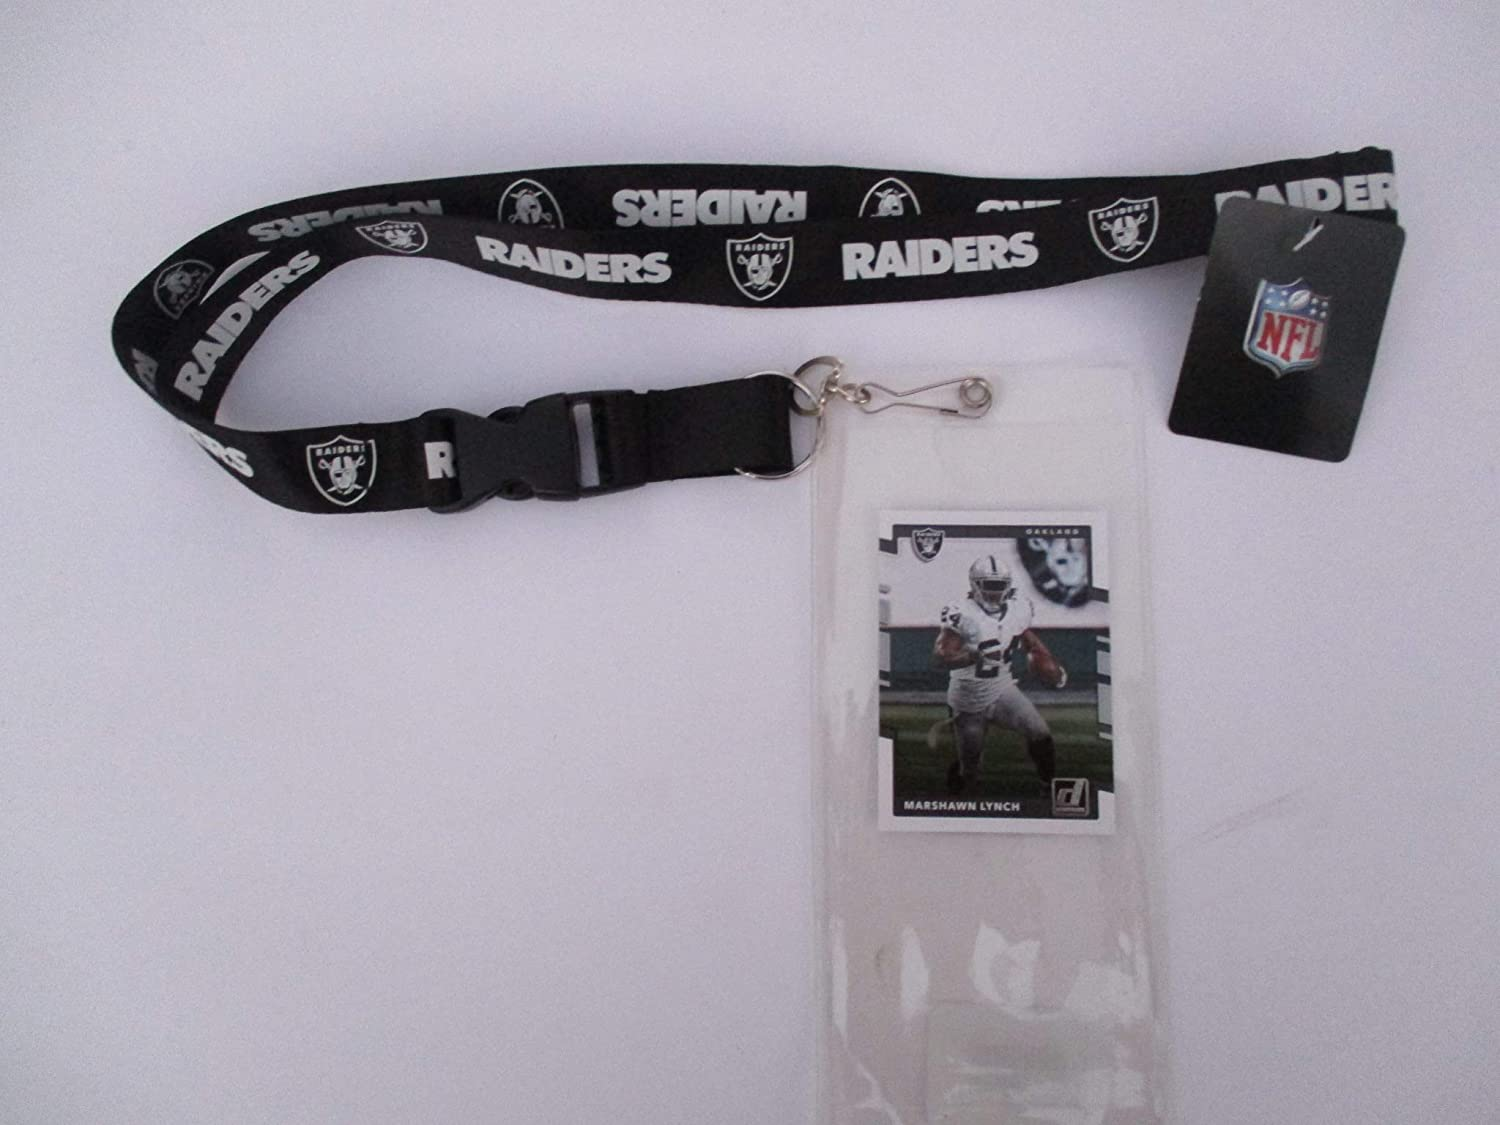 OAKLAND RAIDERS BLACK AND WHITE LANYARD WITH TICKET HOLDER PLUS COLLECTIBLE PLAYER CARD